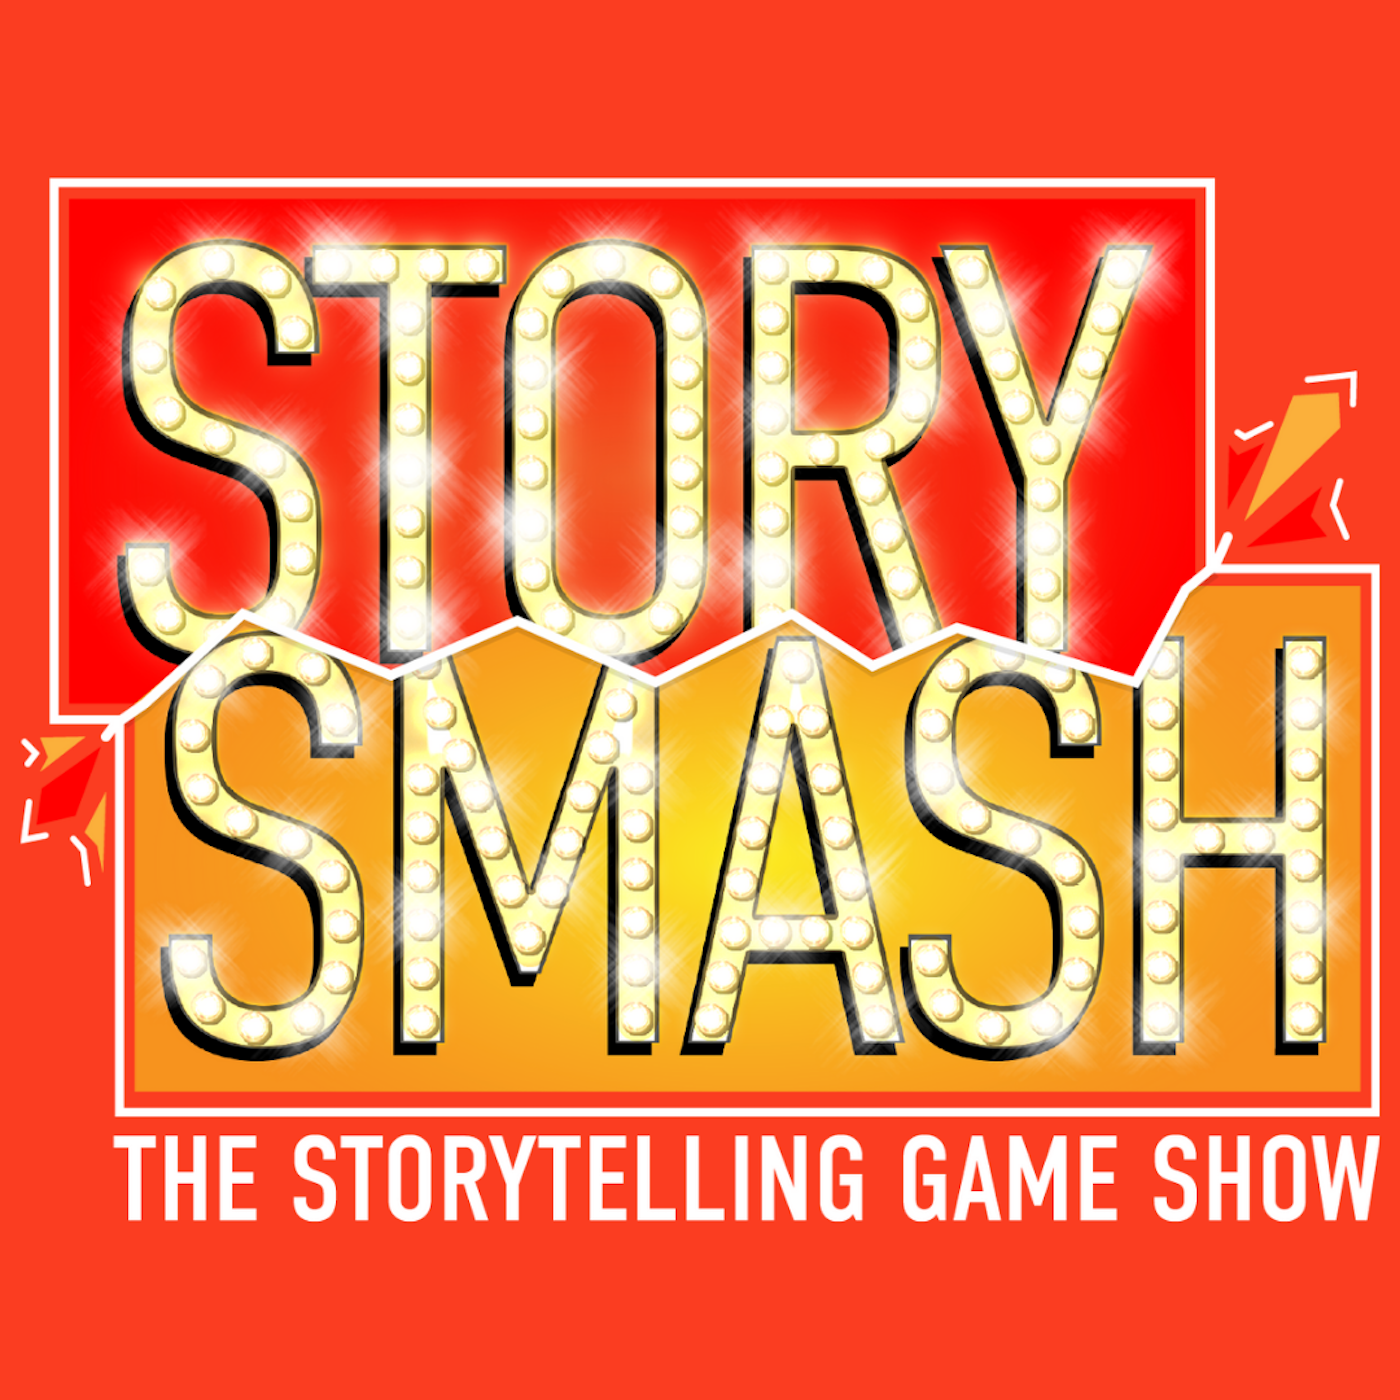 Story Smash the Storytelling Game Show! LIVE at the Hollywood Improv 8-28-21